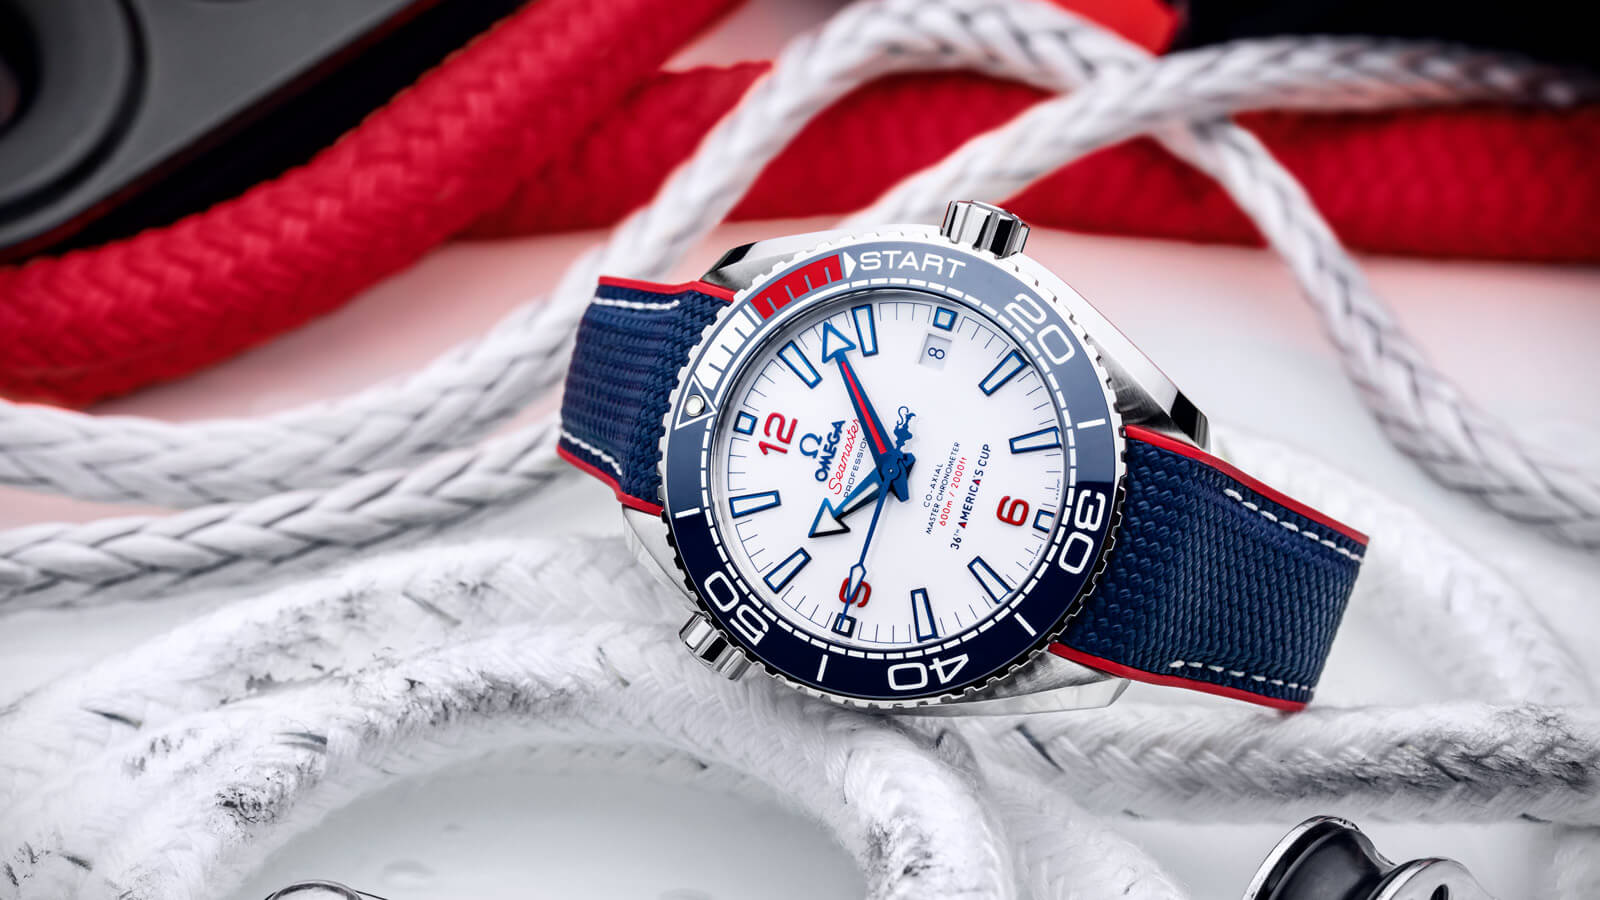 Seamaster Planet Ocean 600 M Planet Ocean 600M Omega Co‑Axial Master Chronometer 43,5 mm - 215.32.43.21.04.001 - Anzeigen 2